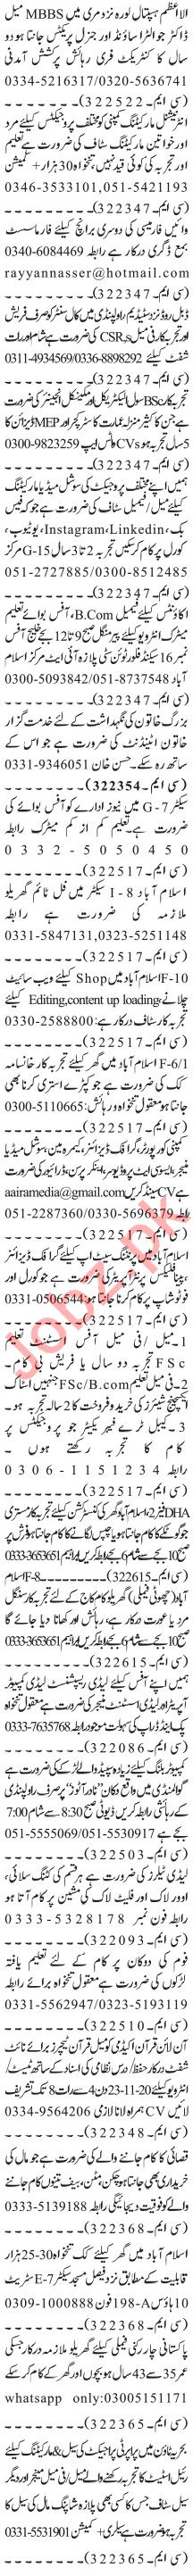 Jang Sunday Classified Ads 22 Nov 2020 for Management Staff